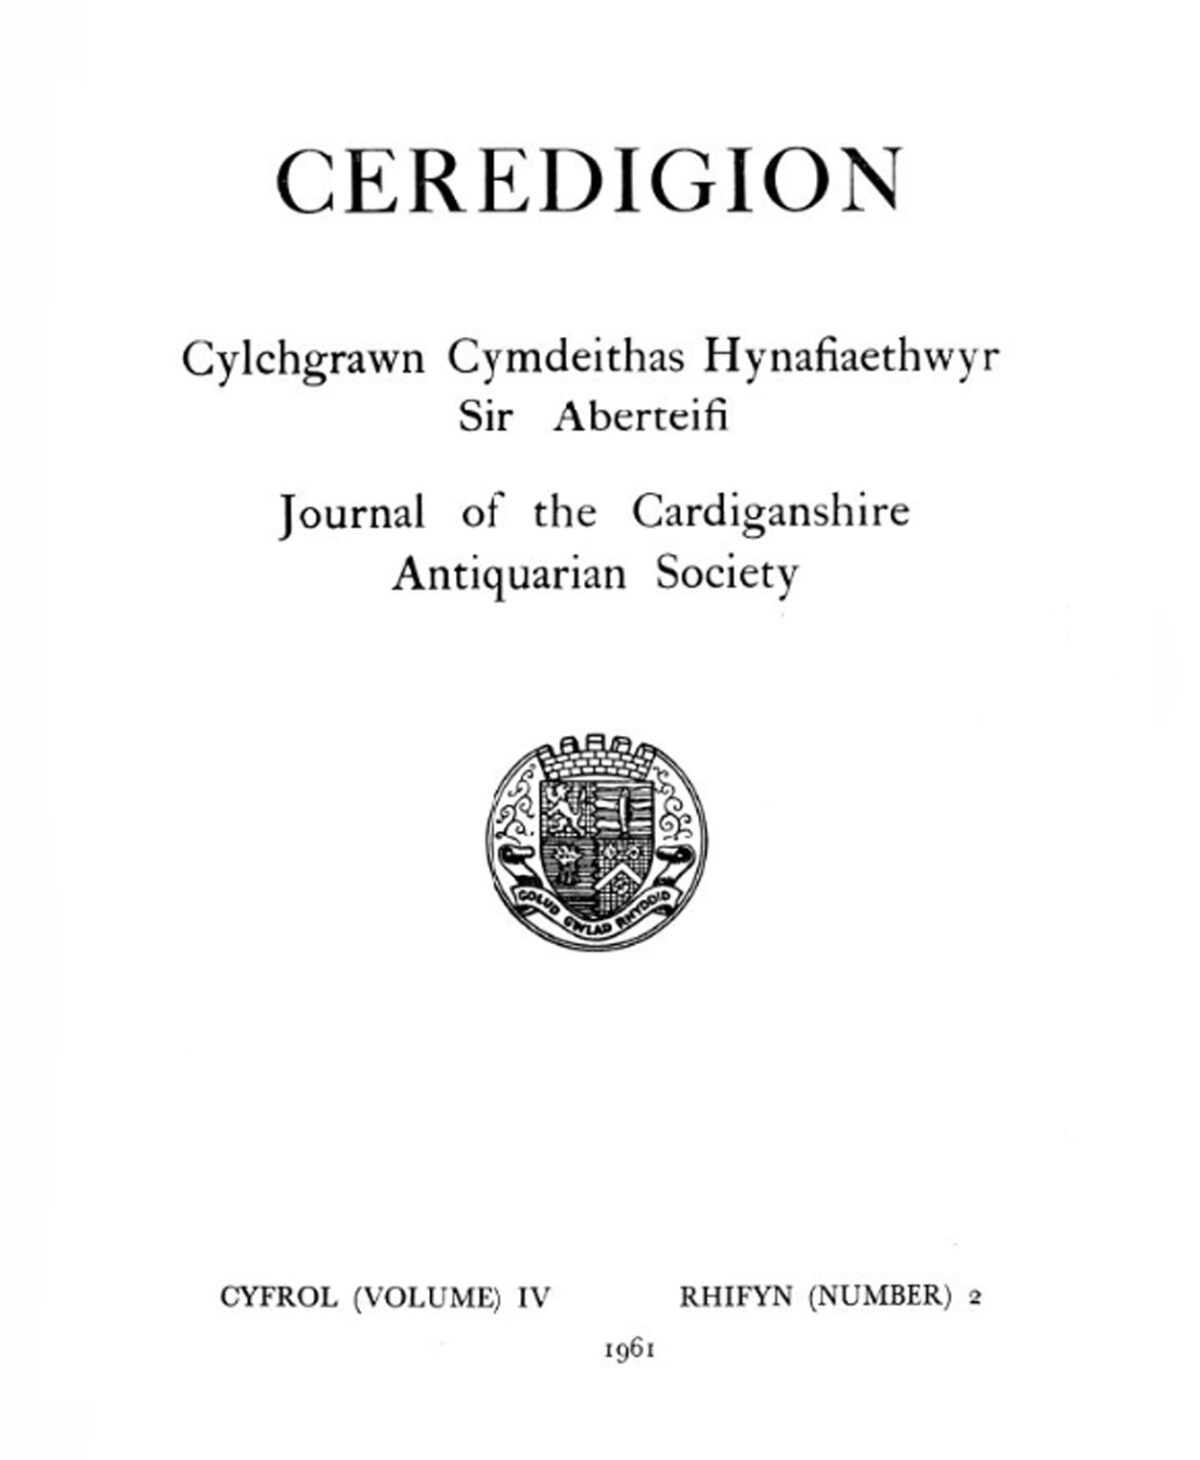 Ceredigion – Journal of the Cardiganshire Antiquarian Society, 1961 Vol IV No 2